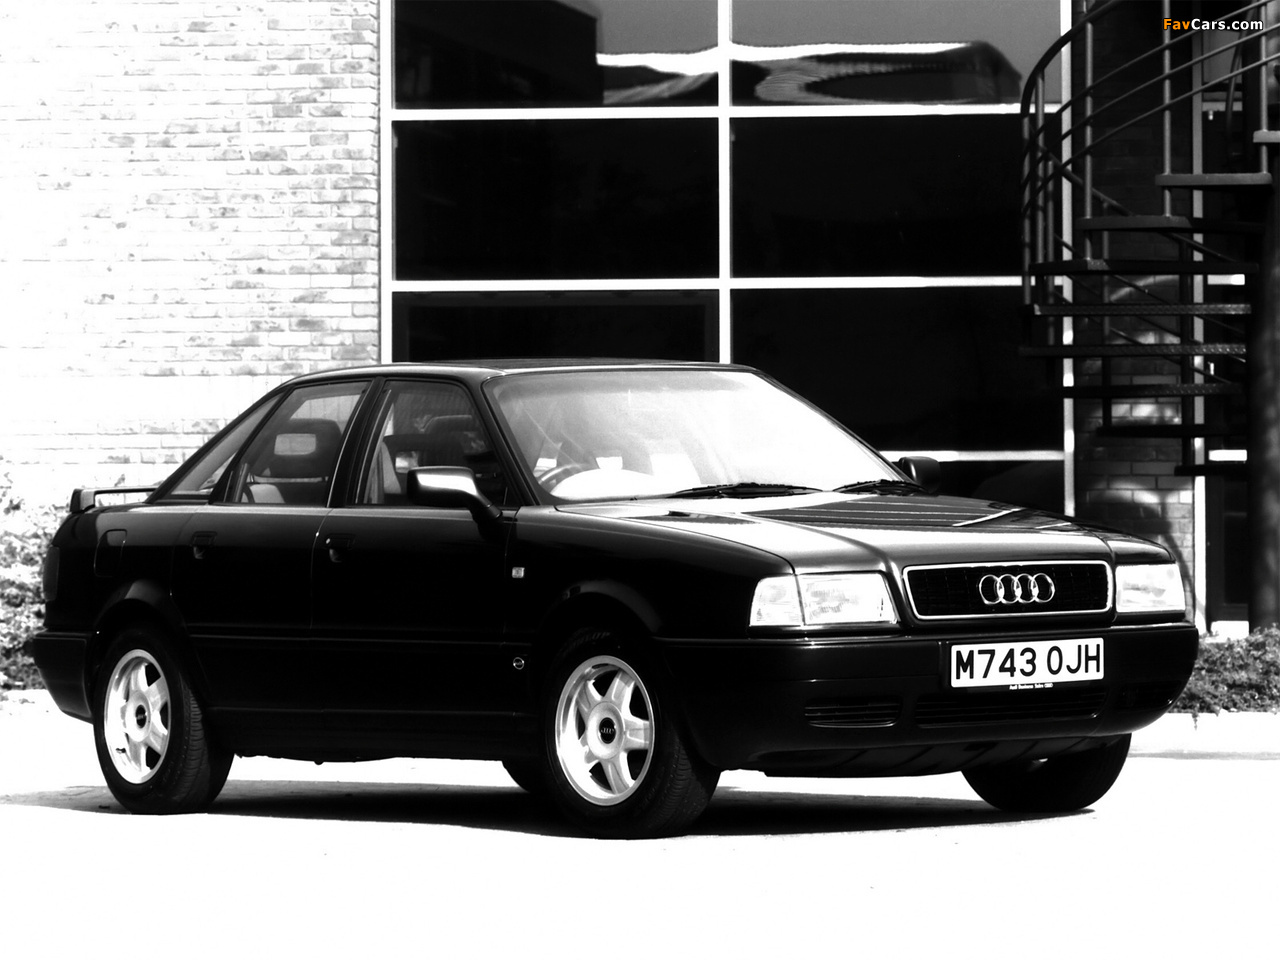 1991 Audi 80 (b4) - pictures, information and specs - Auto-Database.com